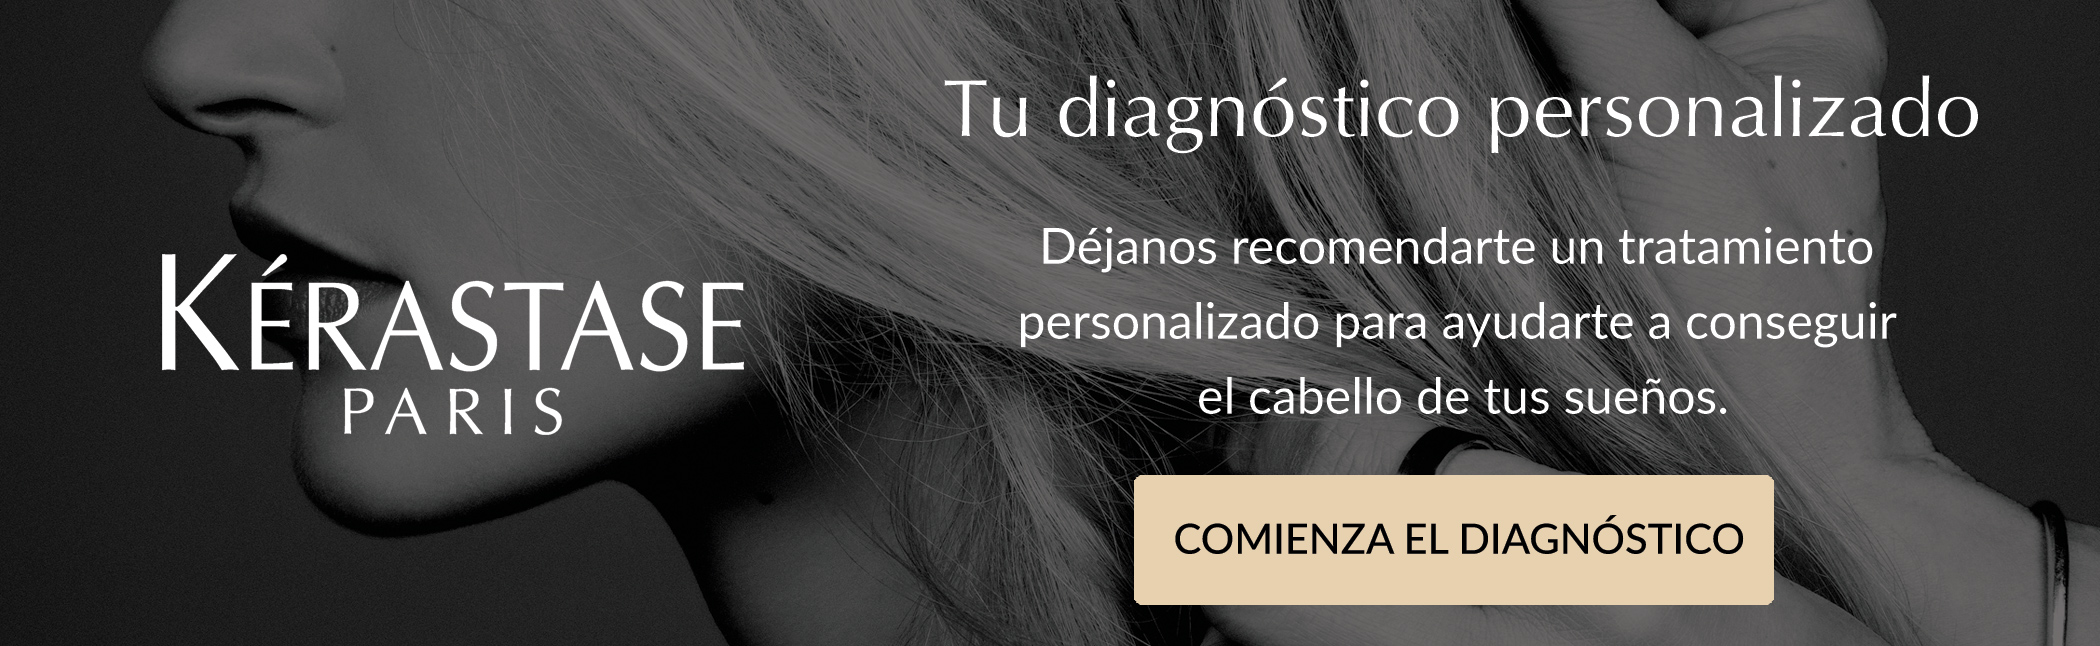 DIAGNOSTICO_KERASTASE_BANNER_HOME